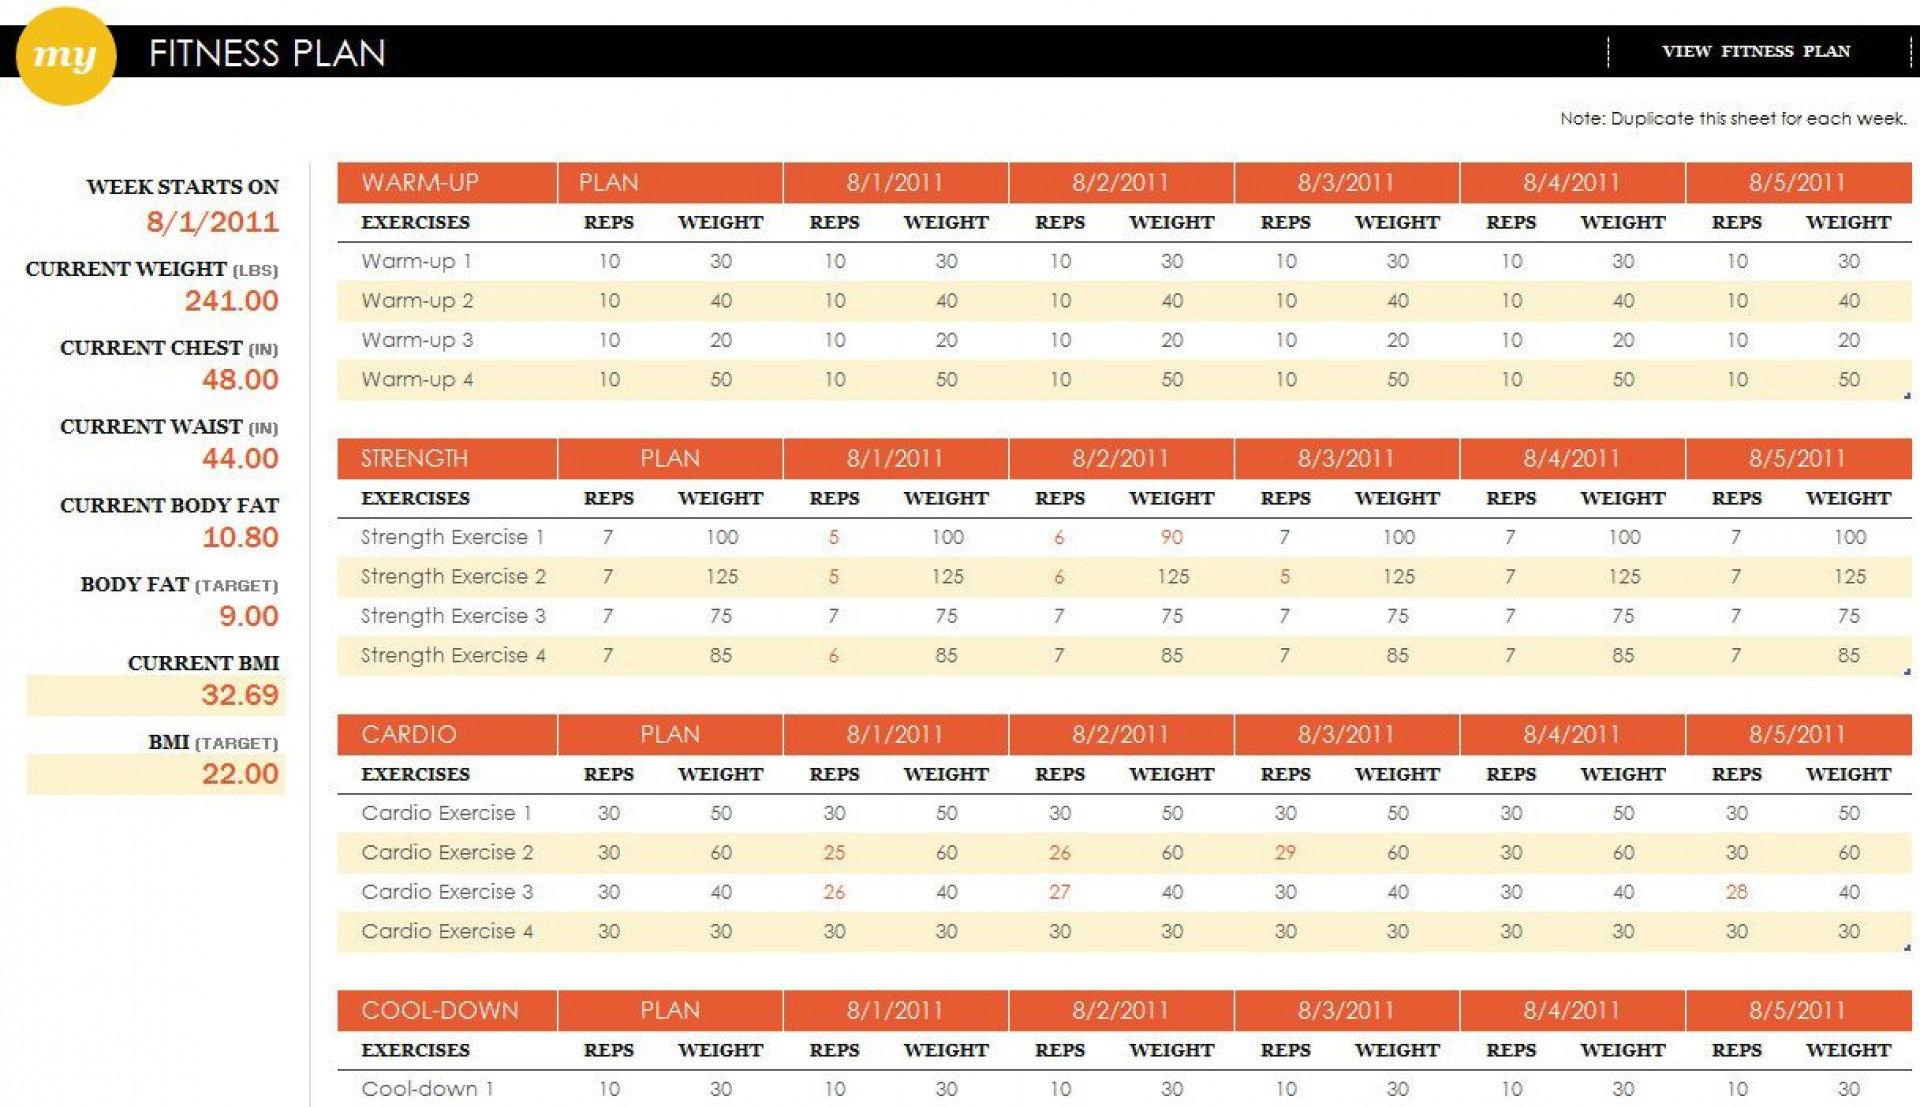 002 Unique Workout Schedule Template Excel Sample  Training Plan Download Weekly Planner1920